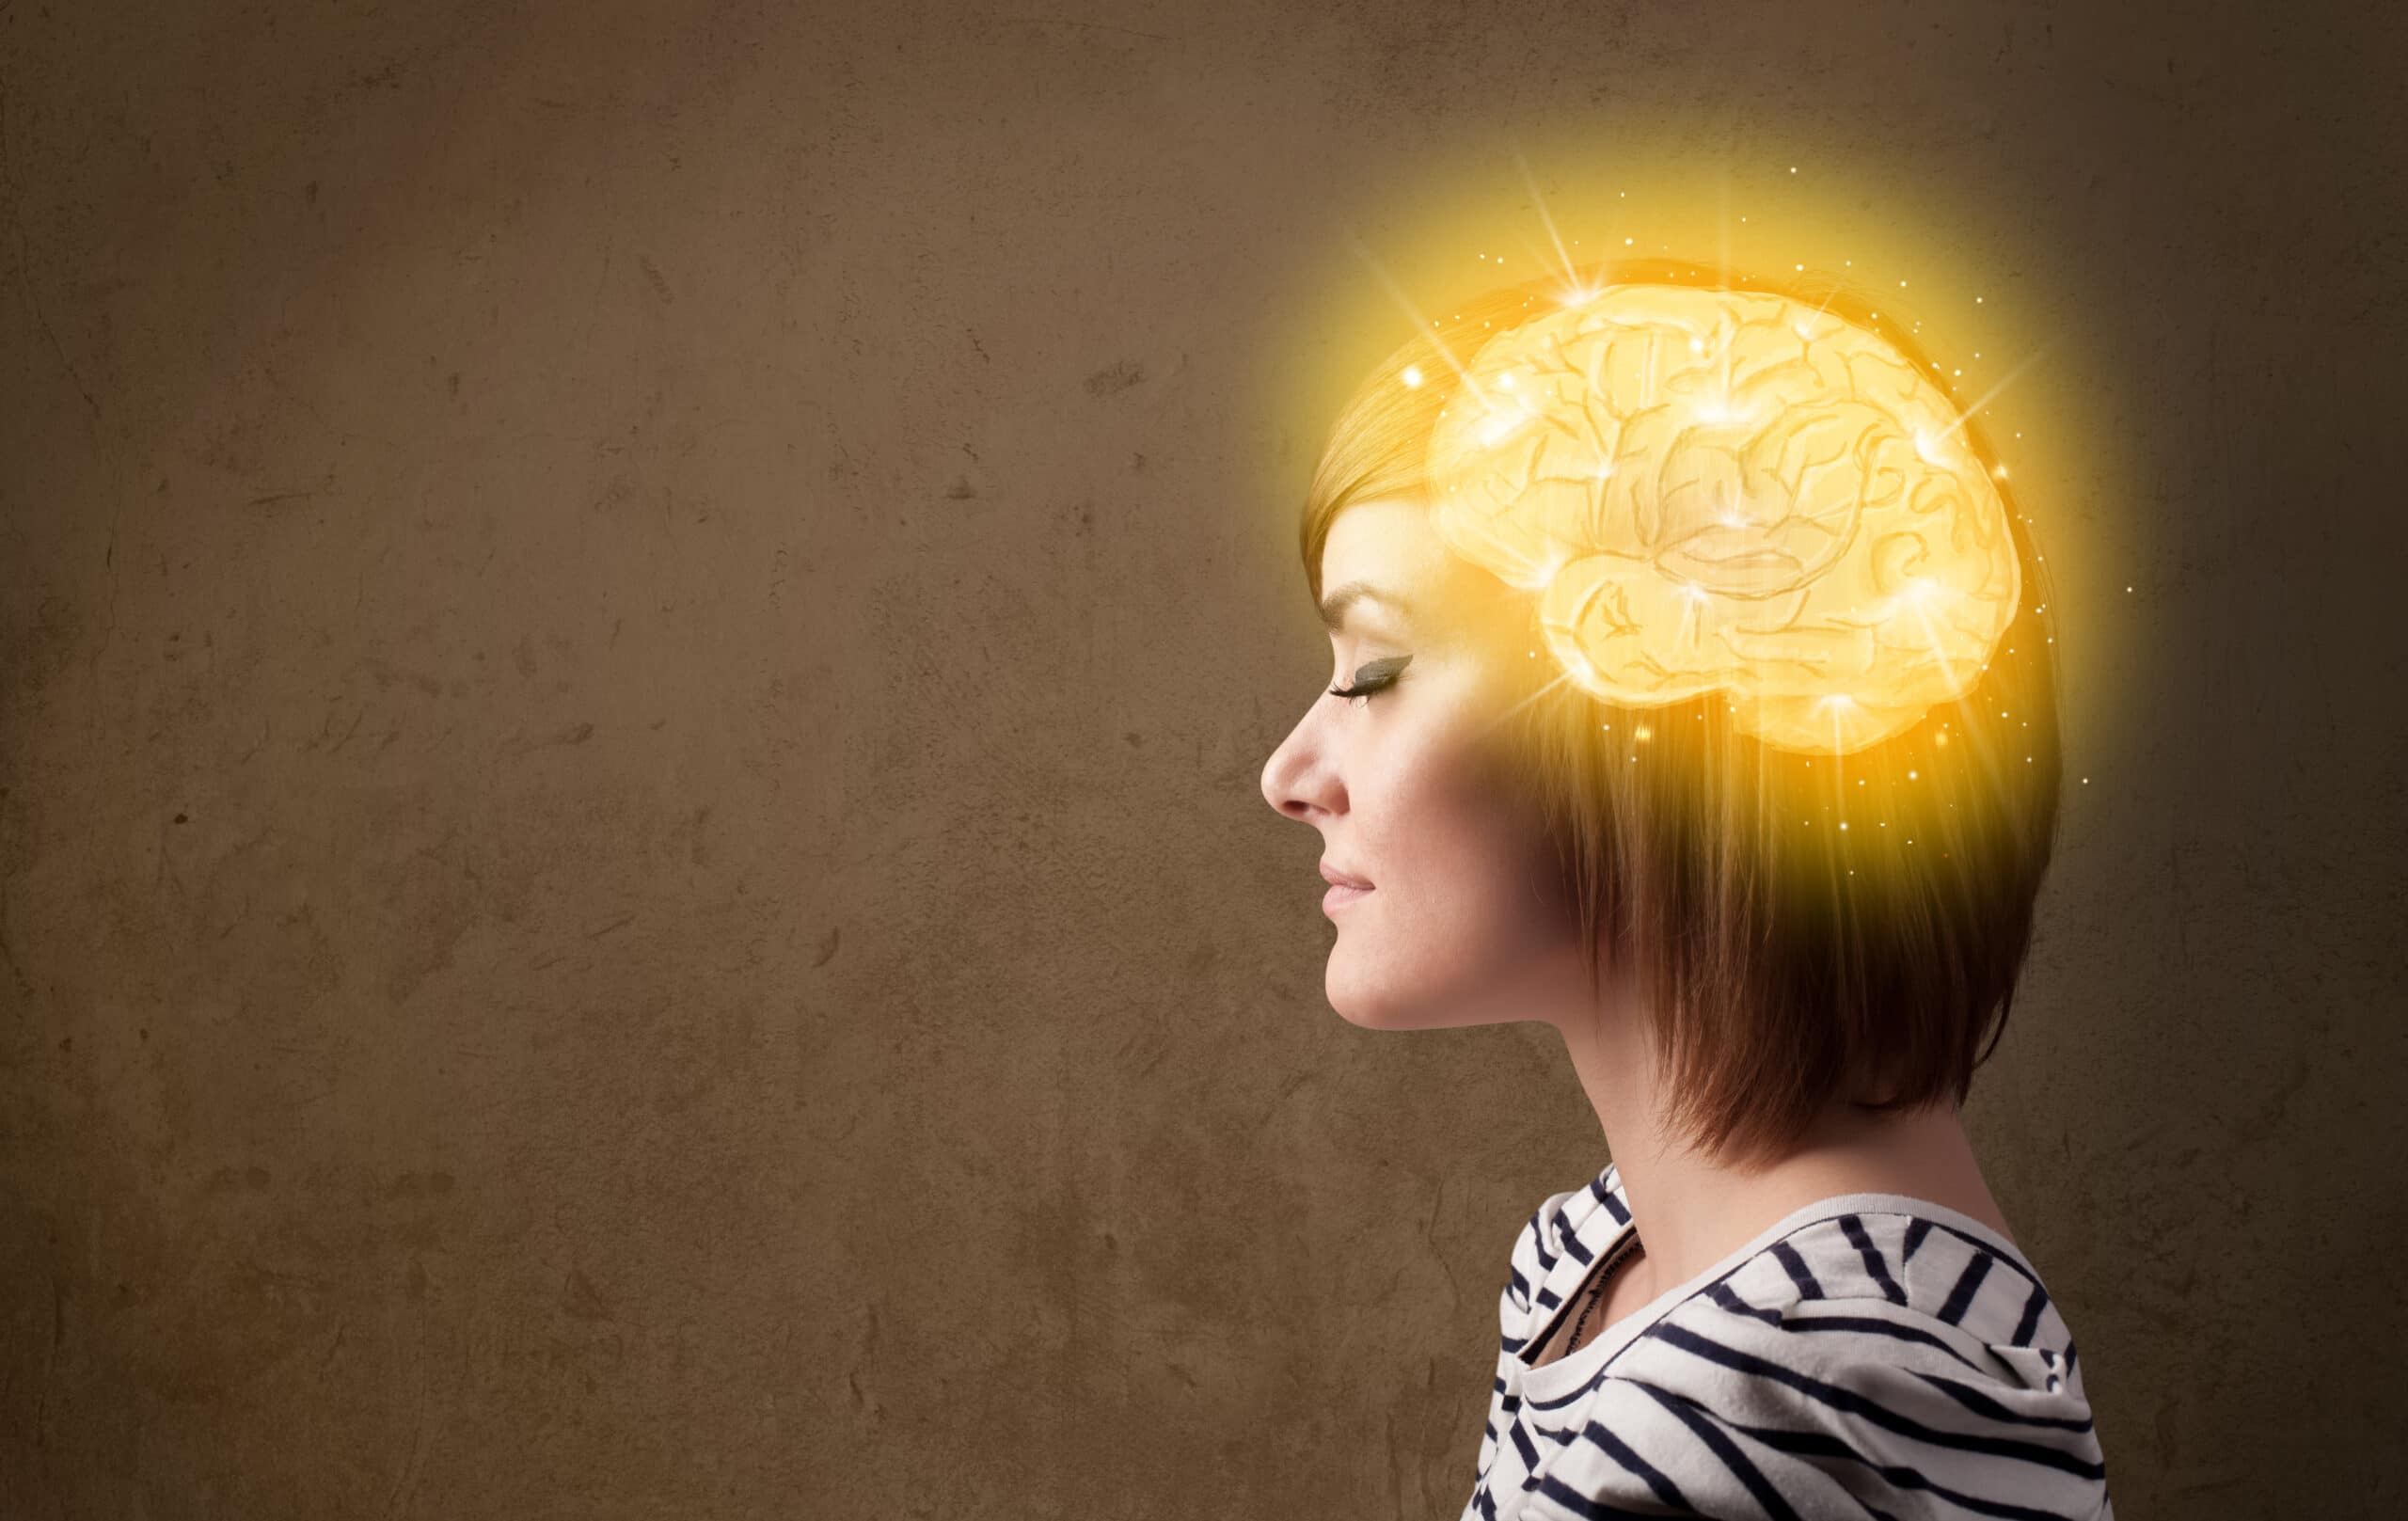 Anxiety May Alter Processing Of >> How To Use Your Mind To Change Your Brain To Decrease Depression And